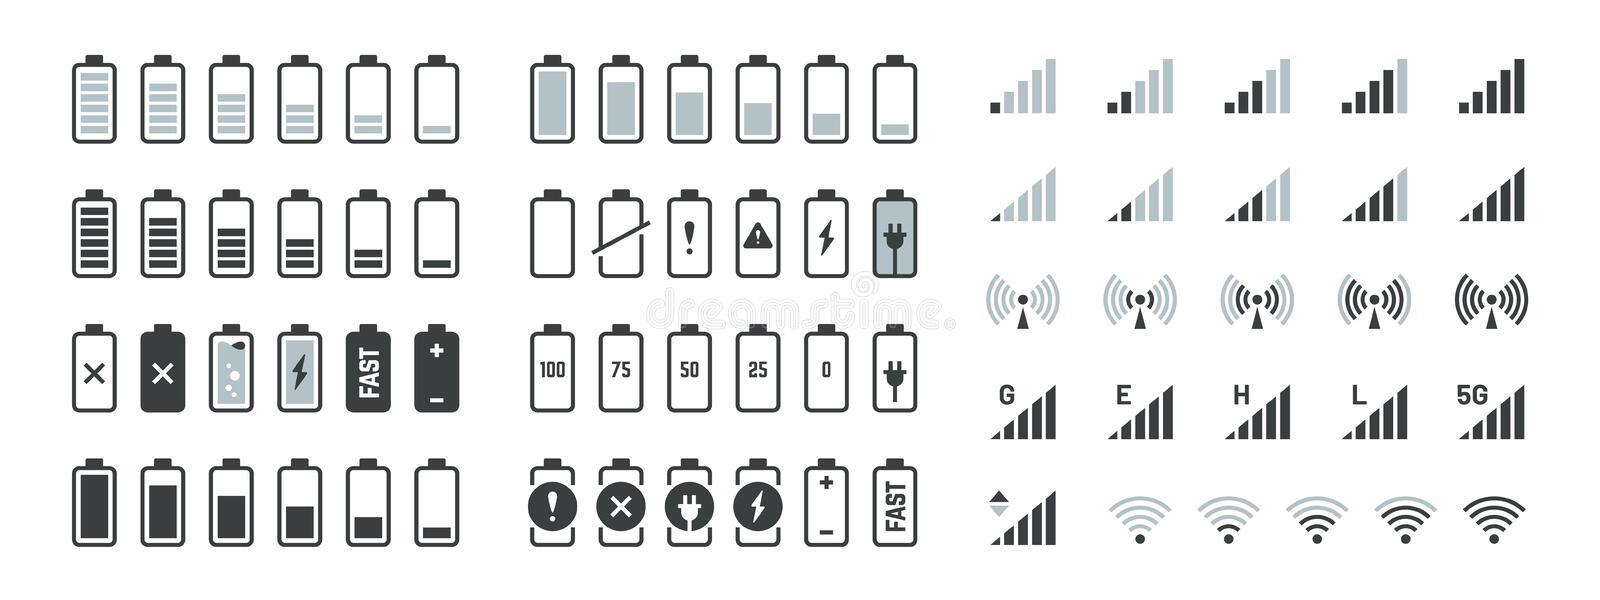 Battery icons. Black charge level gsm and wifi signal strength, smartphone UI elements set. Vector full low and empty. Charge status, smart sign progression stock illustration